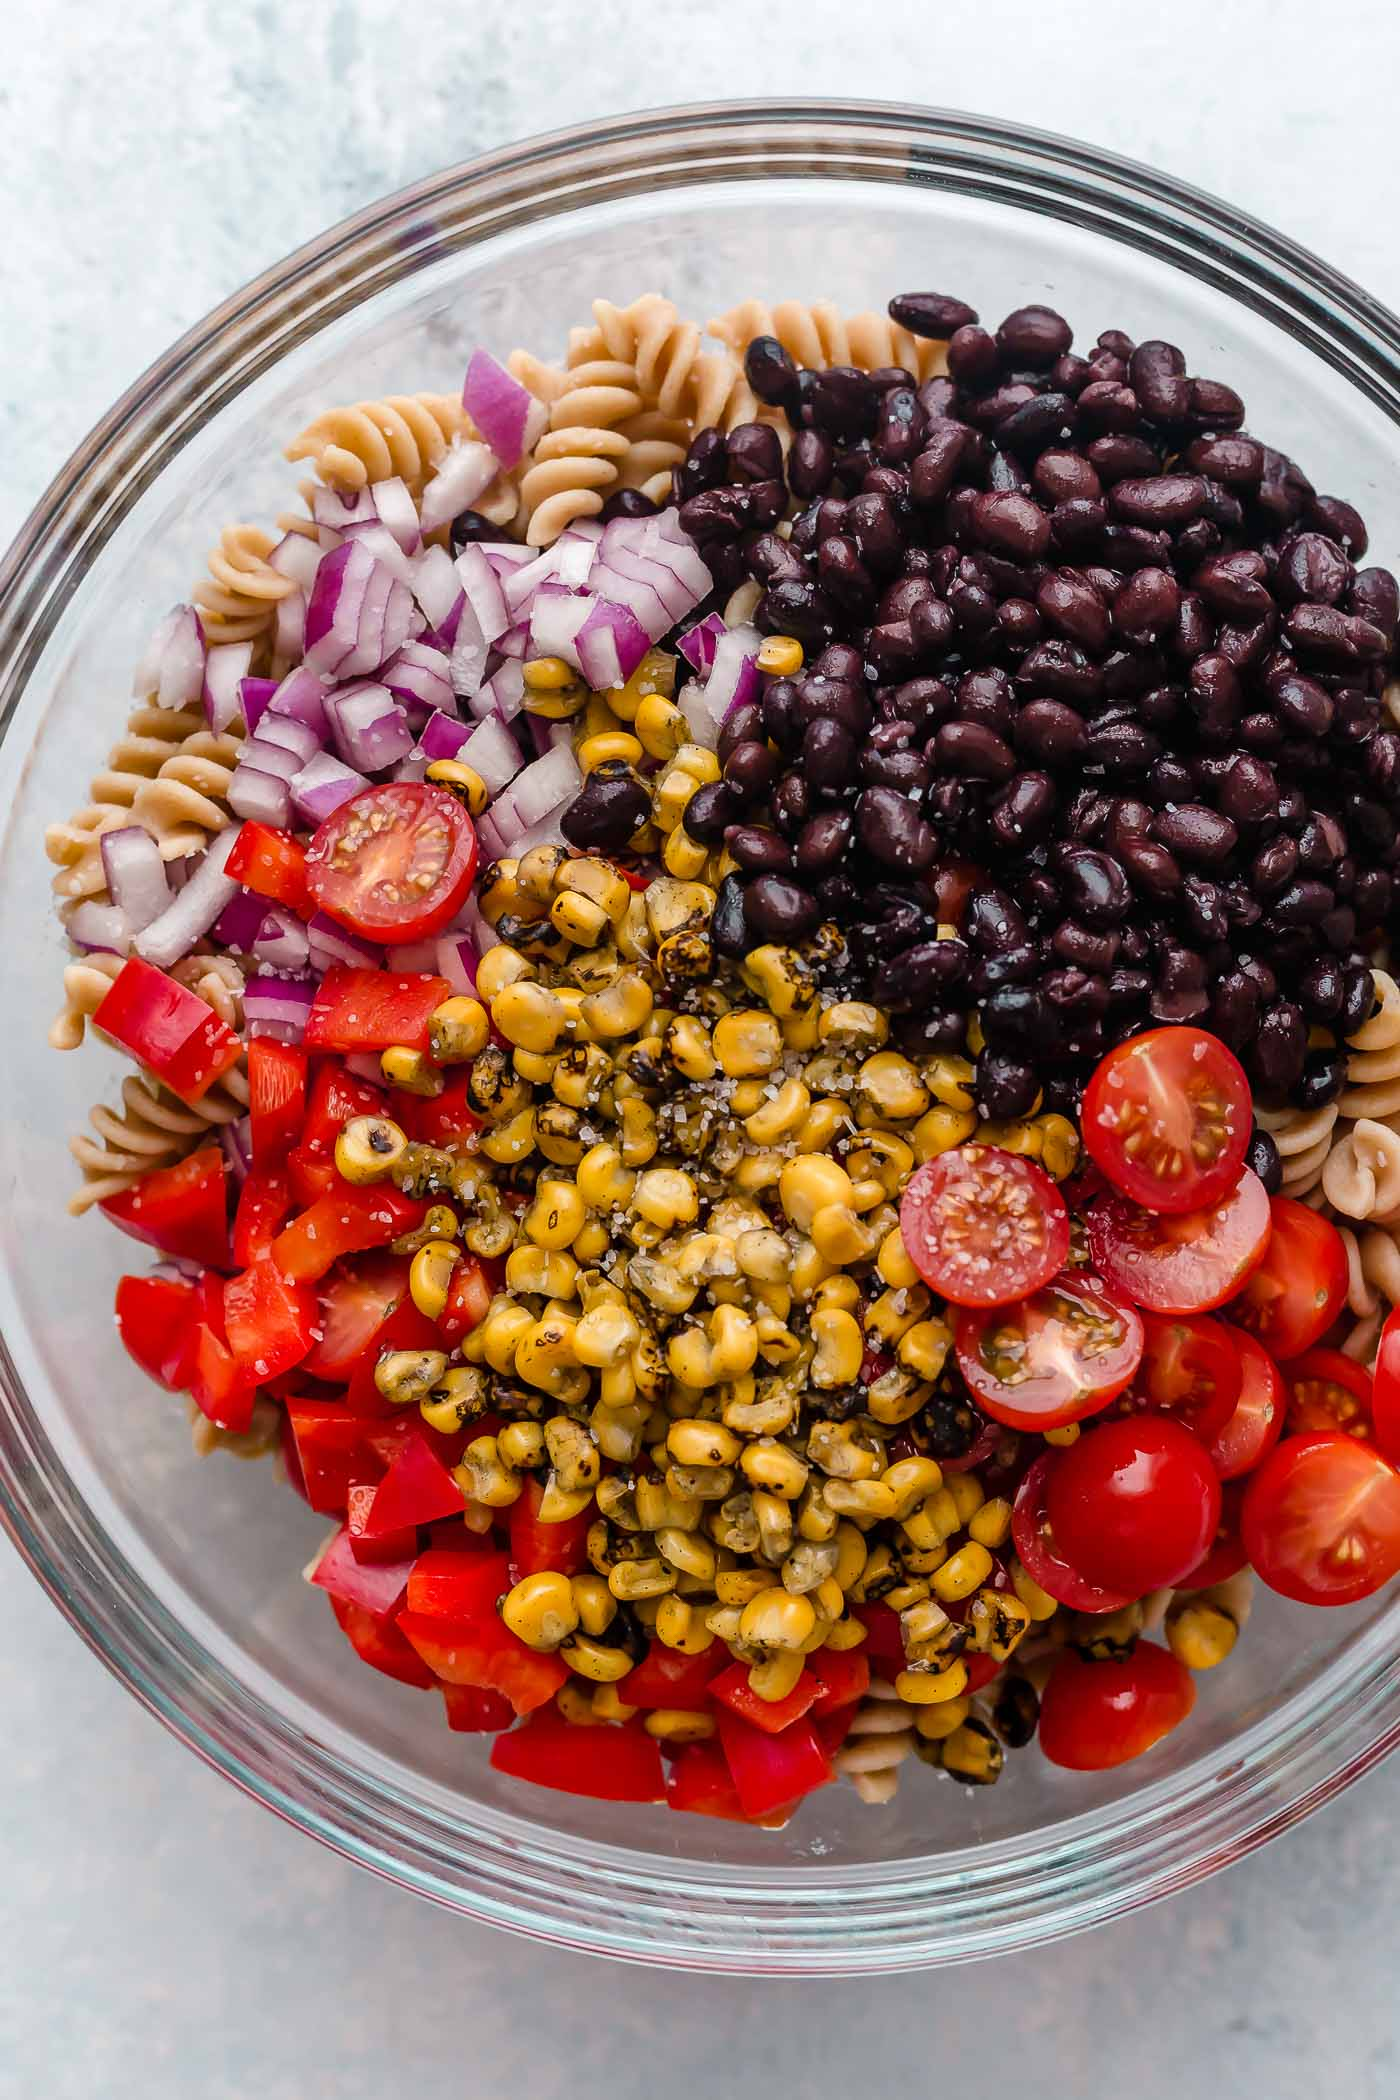 vegan southwest pasta salad recipe ingredients layered in a clear mixing bowl